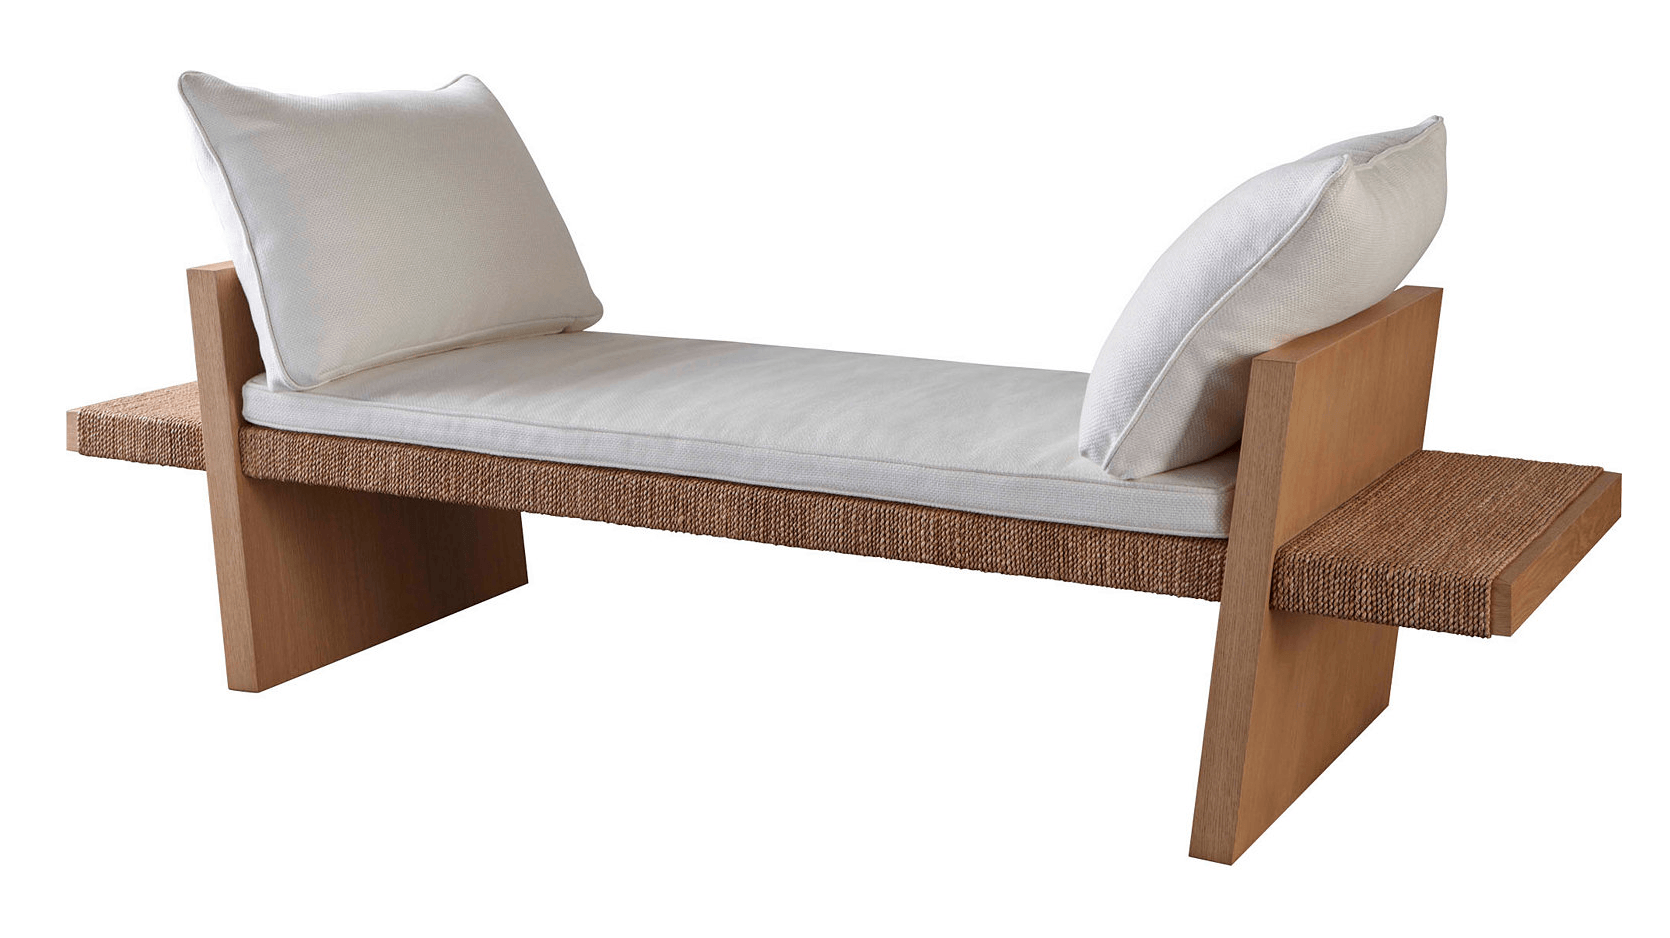 euclid daybed